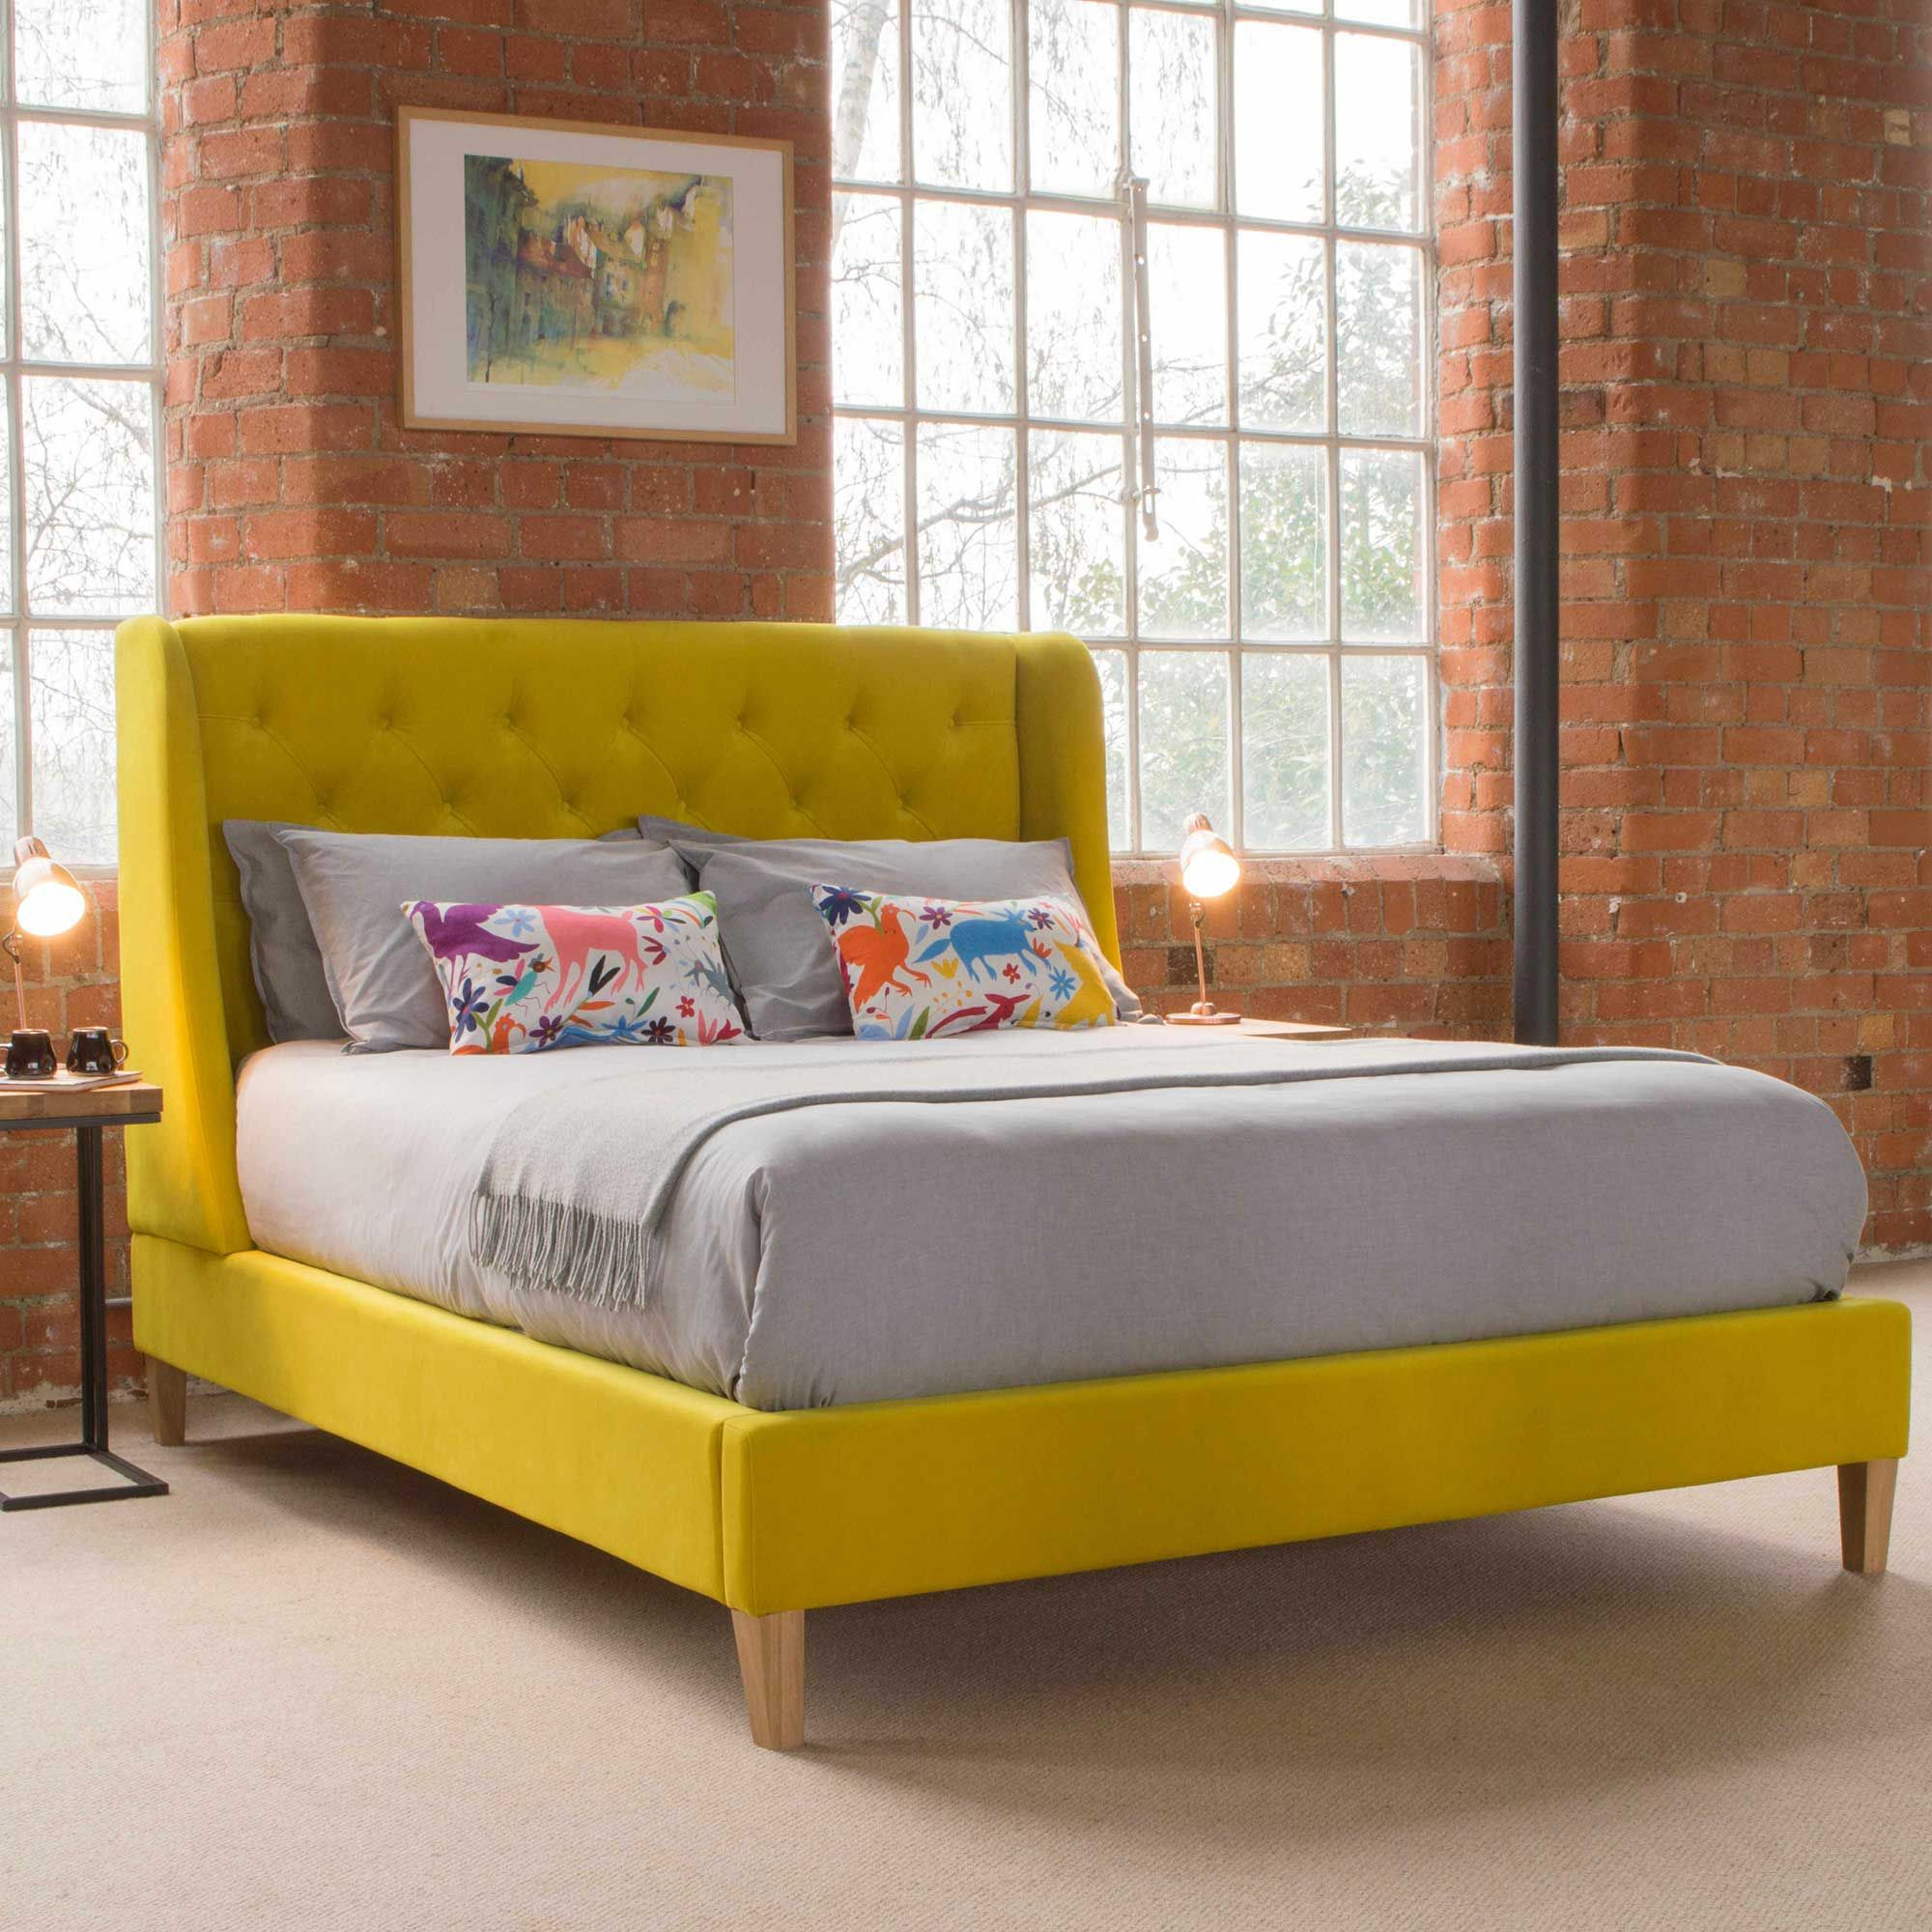 Juniper upholstered bedframe bedframes bedroom beautiful bedrooms bed frame glasgow cosy